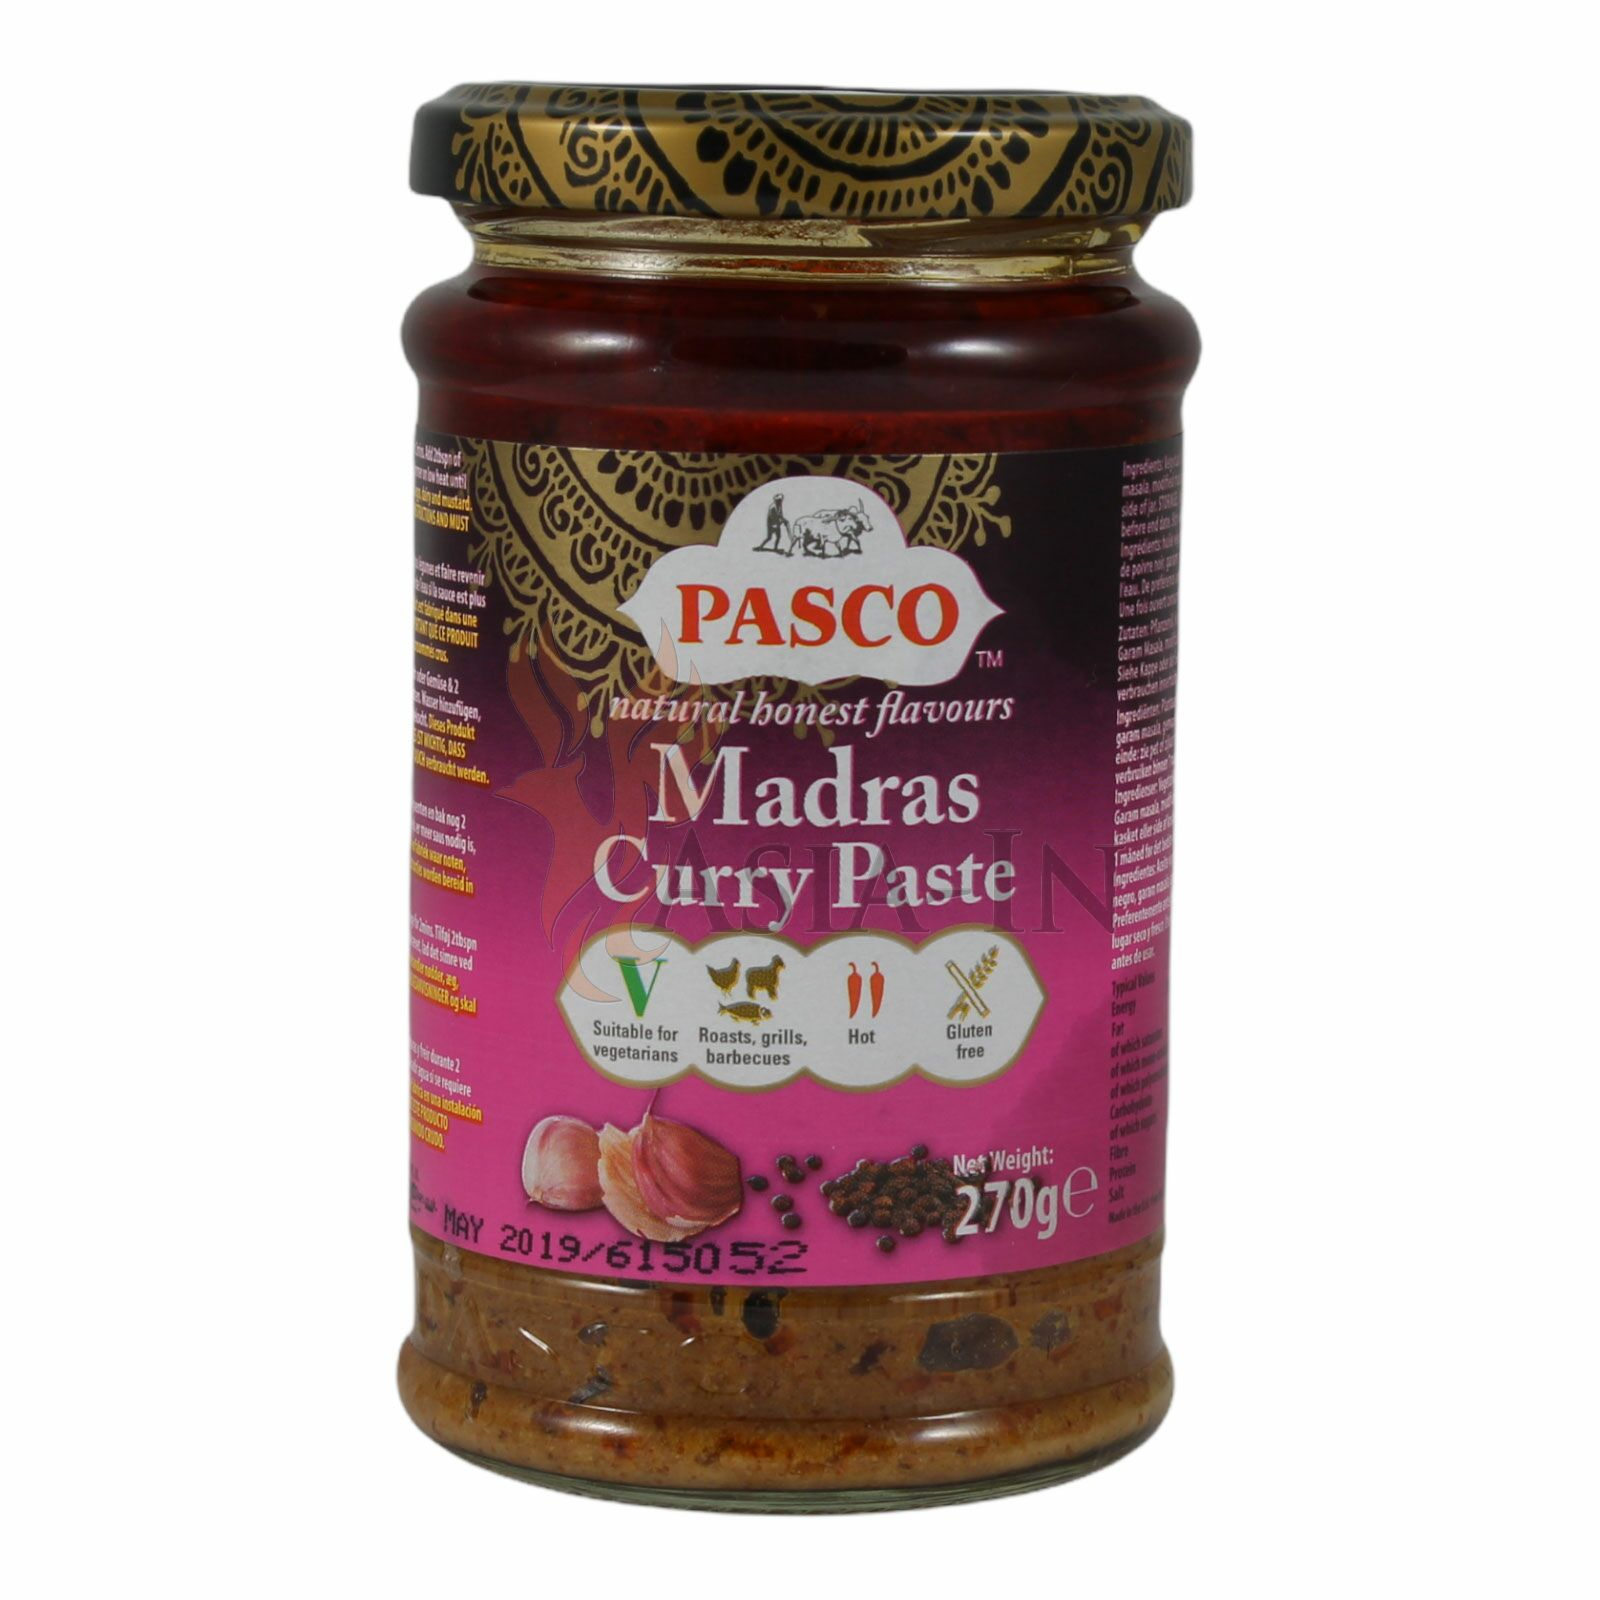 Currypaste Madras Currypaste Pasco 270g